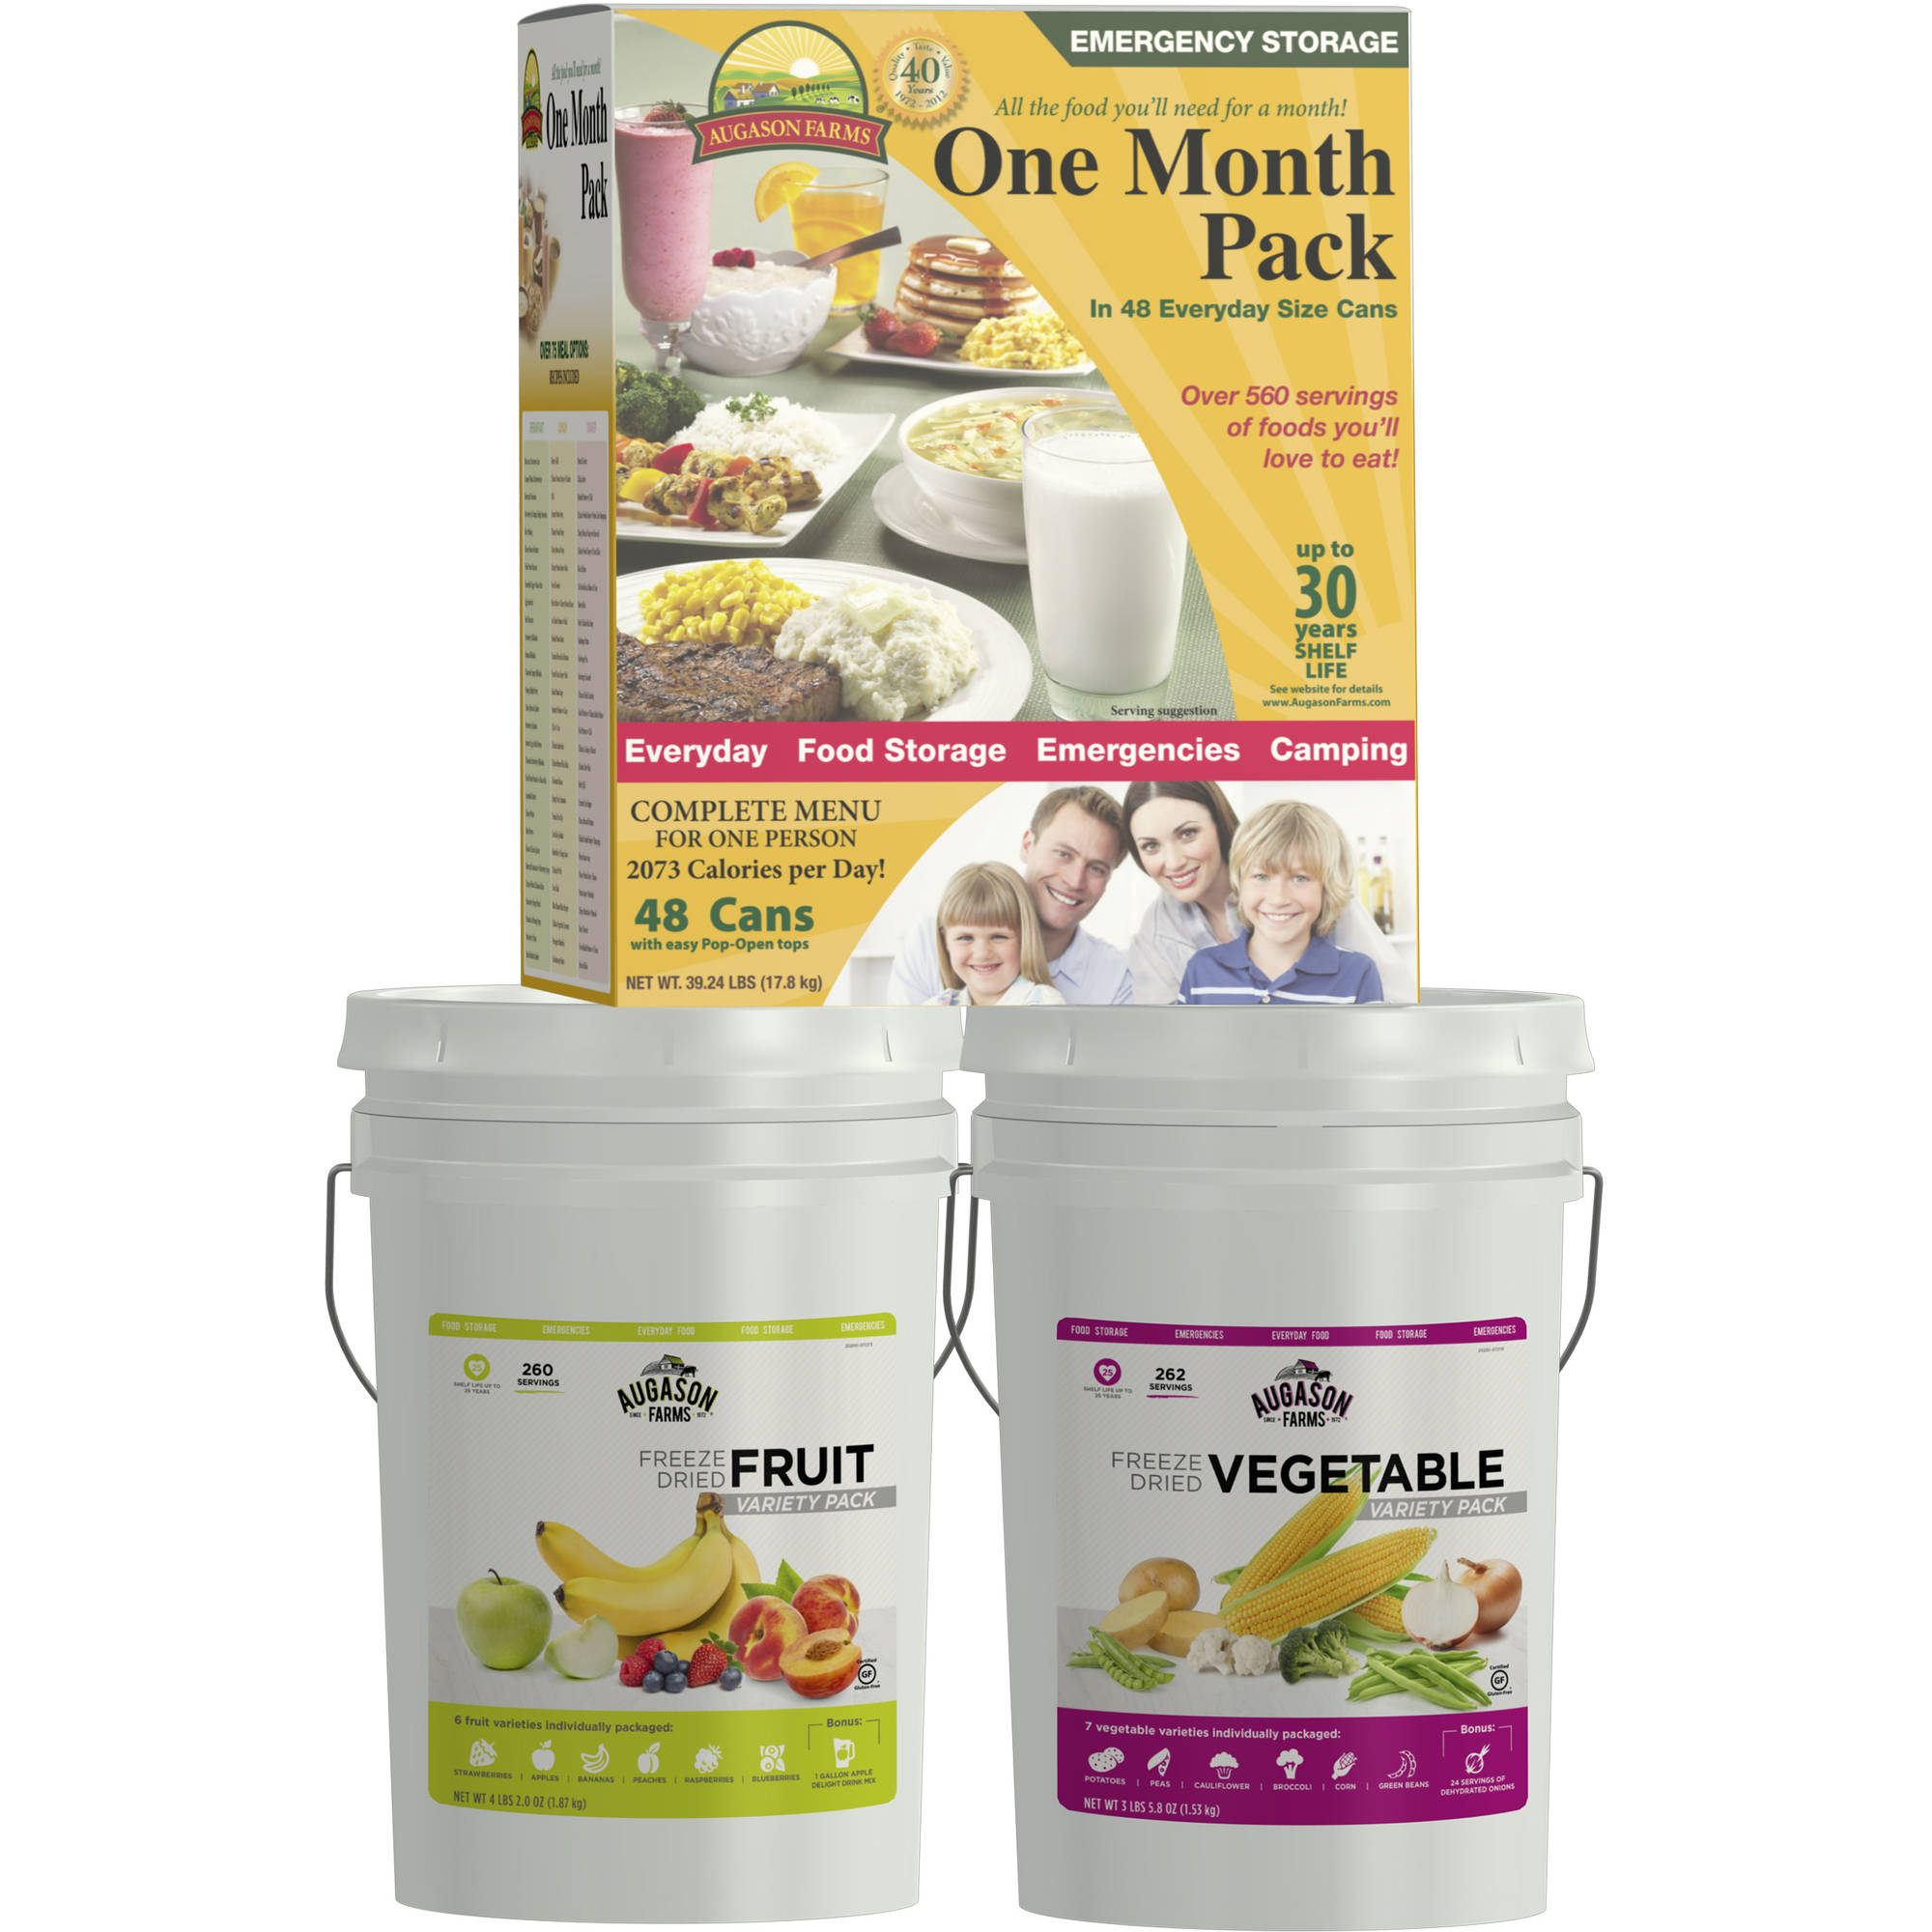 Augason Farms Emergency Food Freeze Dried Fruit/Vegetable & One Month Pack Food Storage Containers, 3 count